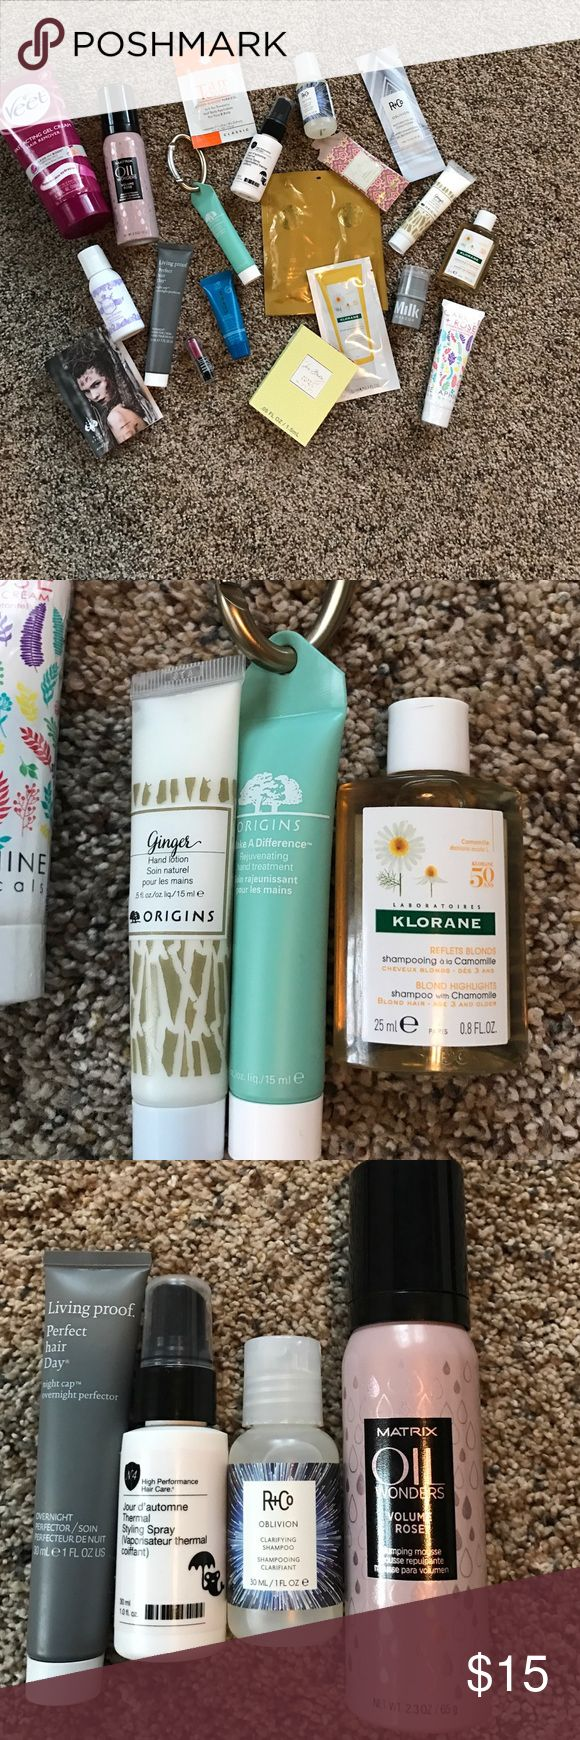 Beauty sample bundle Sample size and trial size and 1 full size product. Matrix, Origins, Living Proof, Sephora, Milk, Oribe, and more. Lotions, hair removal, self tanner, mouse, shampoos and conditioners, lipstick and blush, all new! Best way to find your fav product Makeup